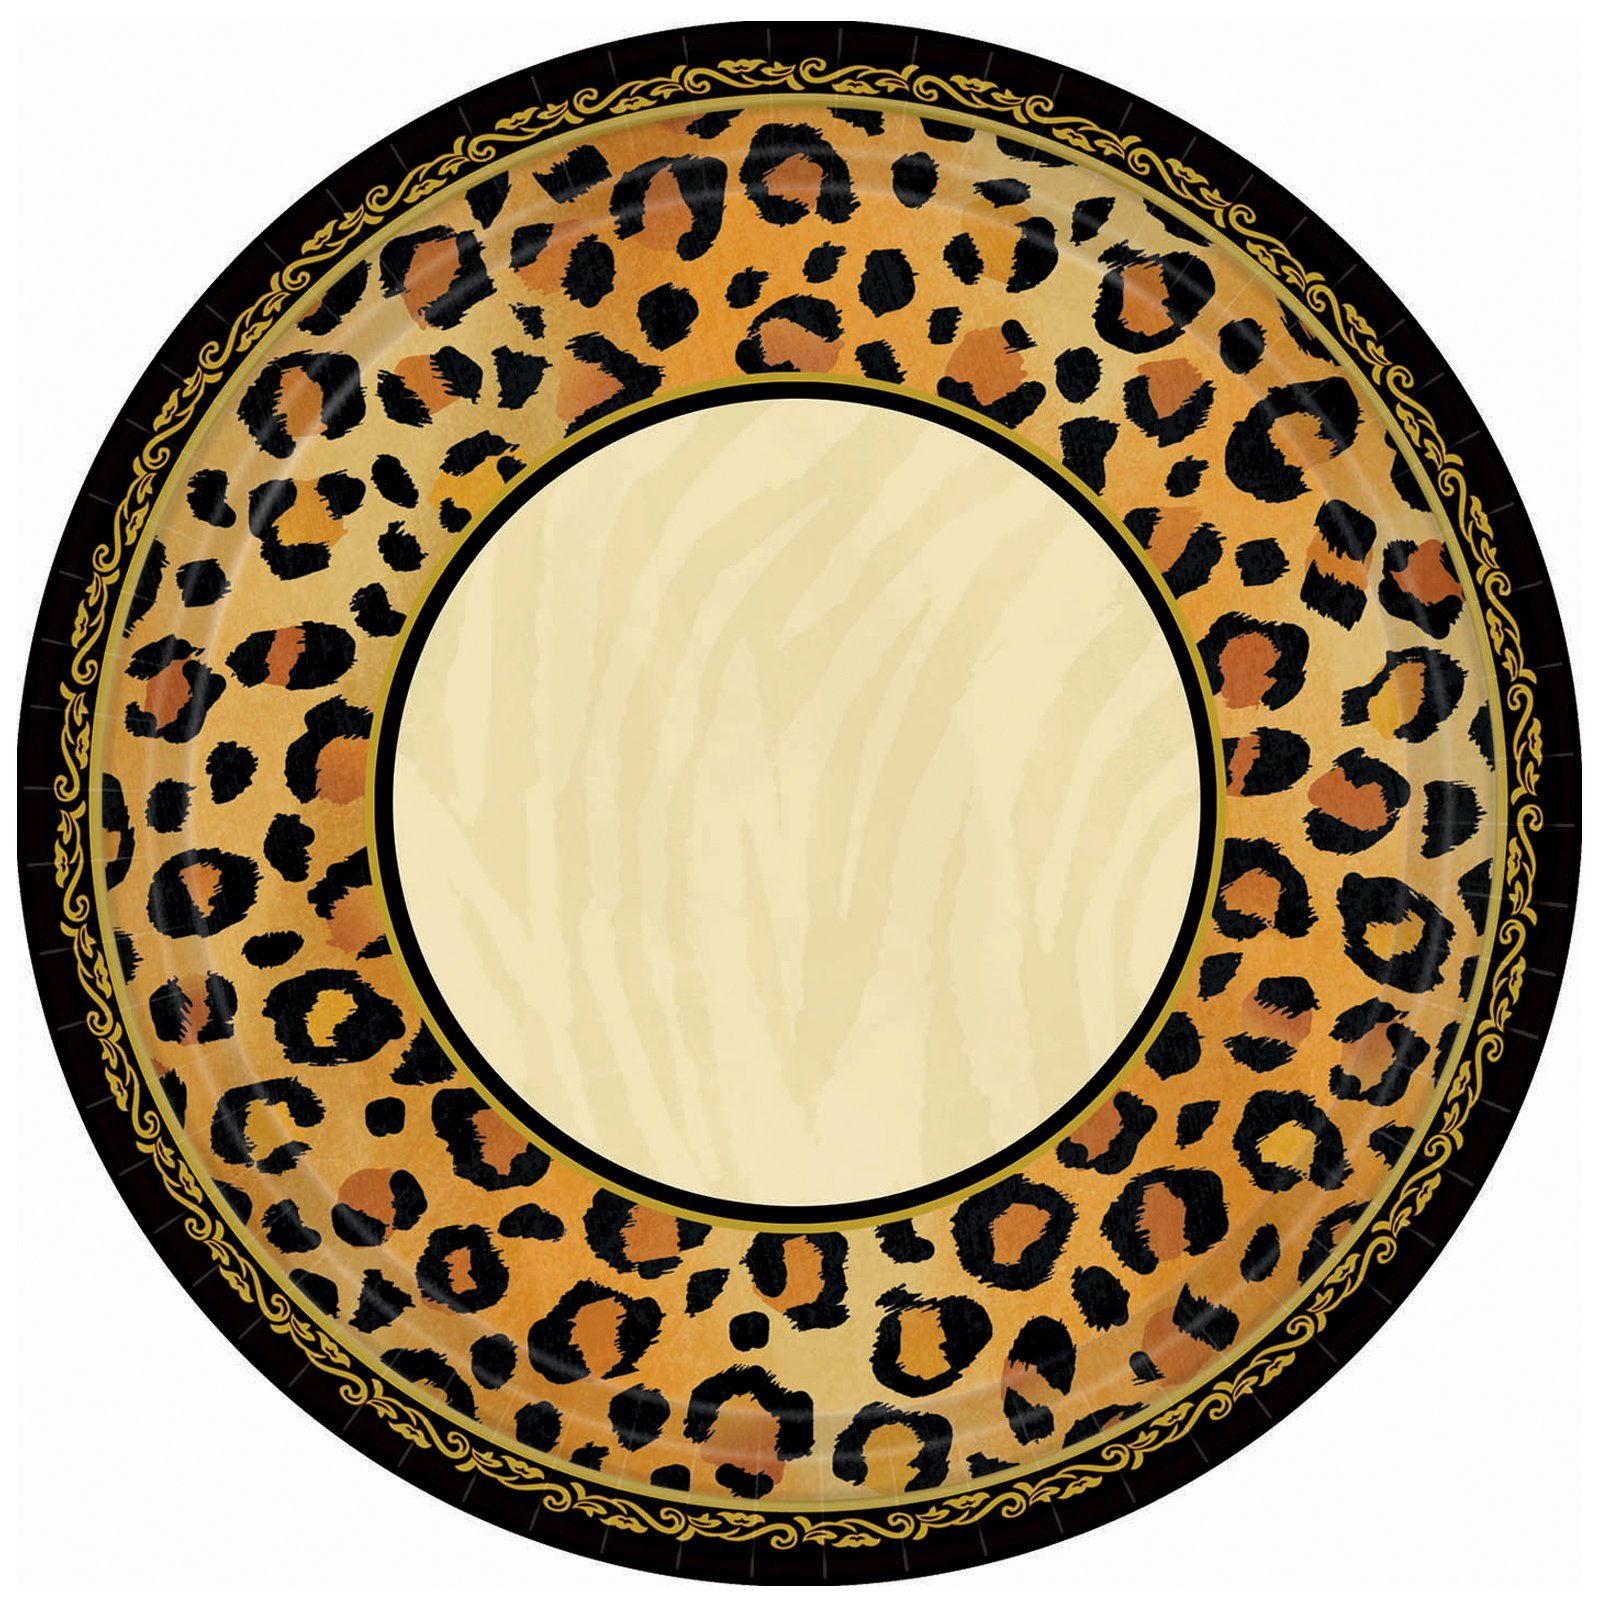 Leopard Print Dinner Plates | Migrant Resource Network